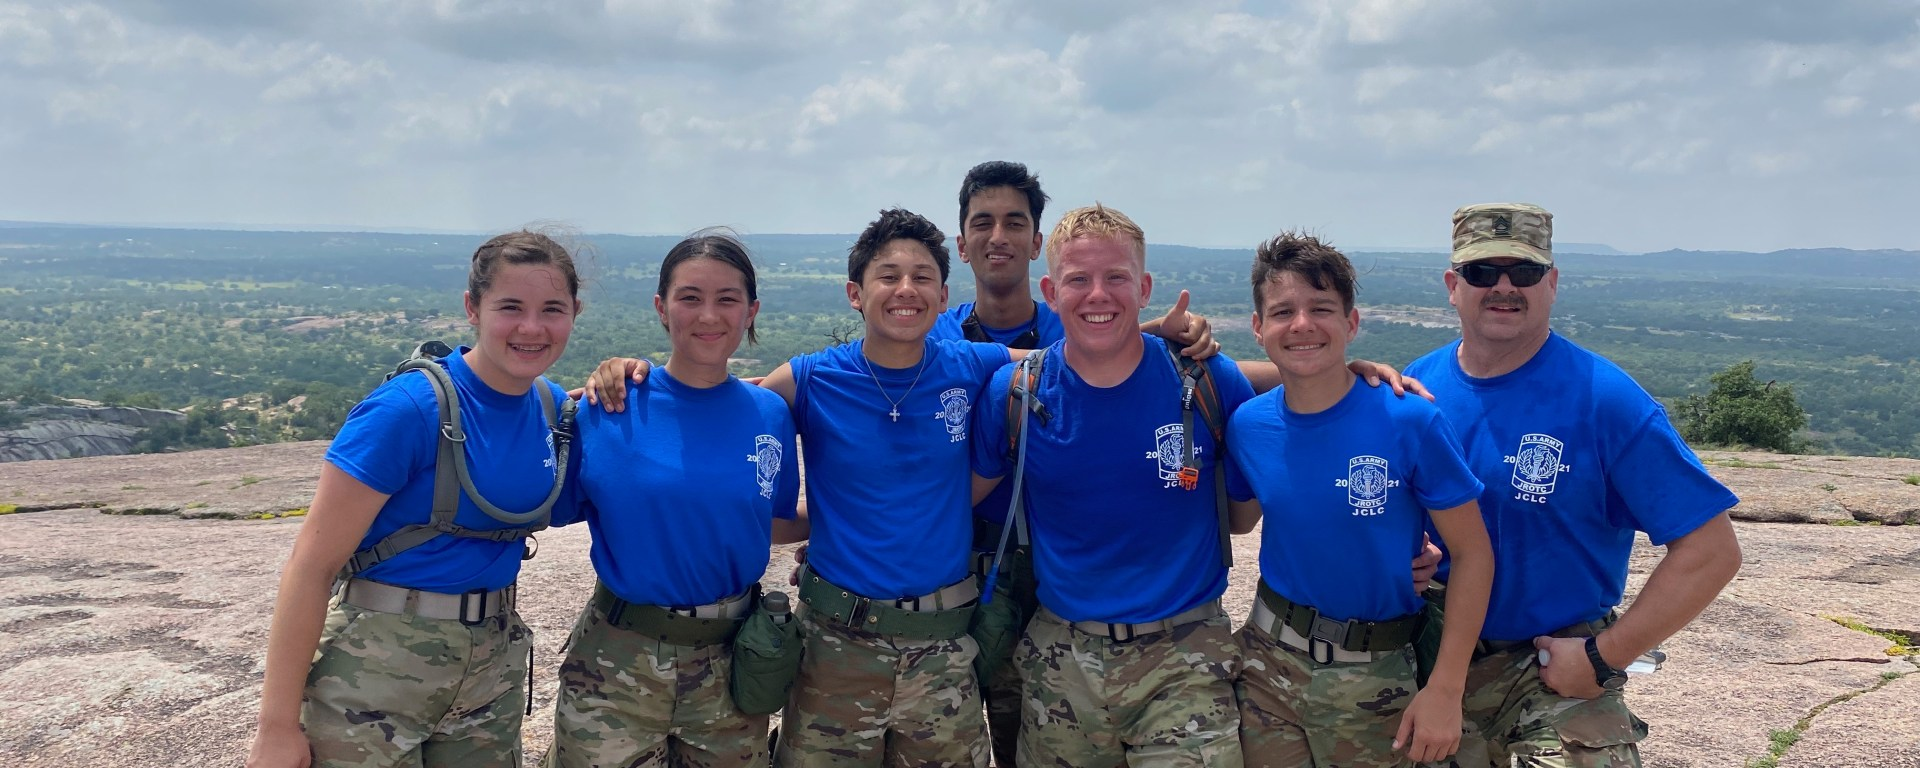 Cadets at JCLC